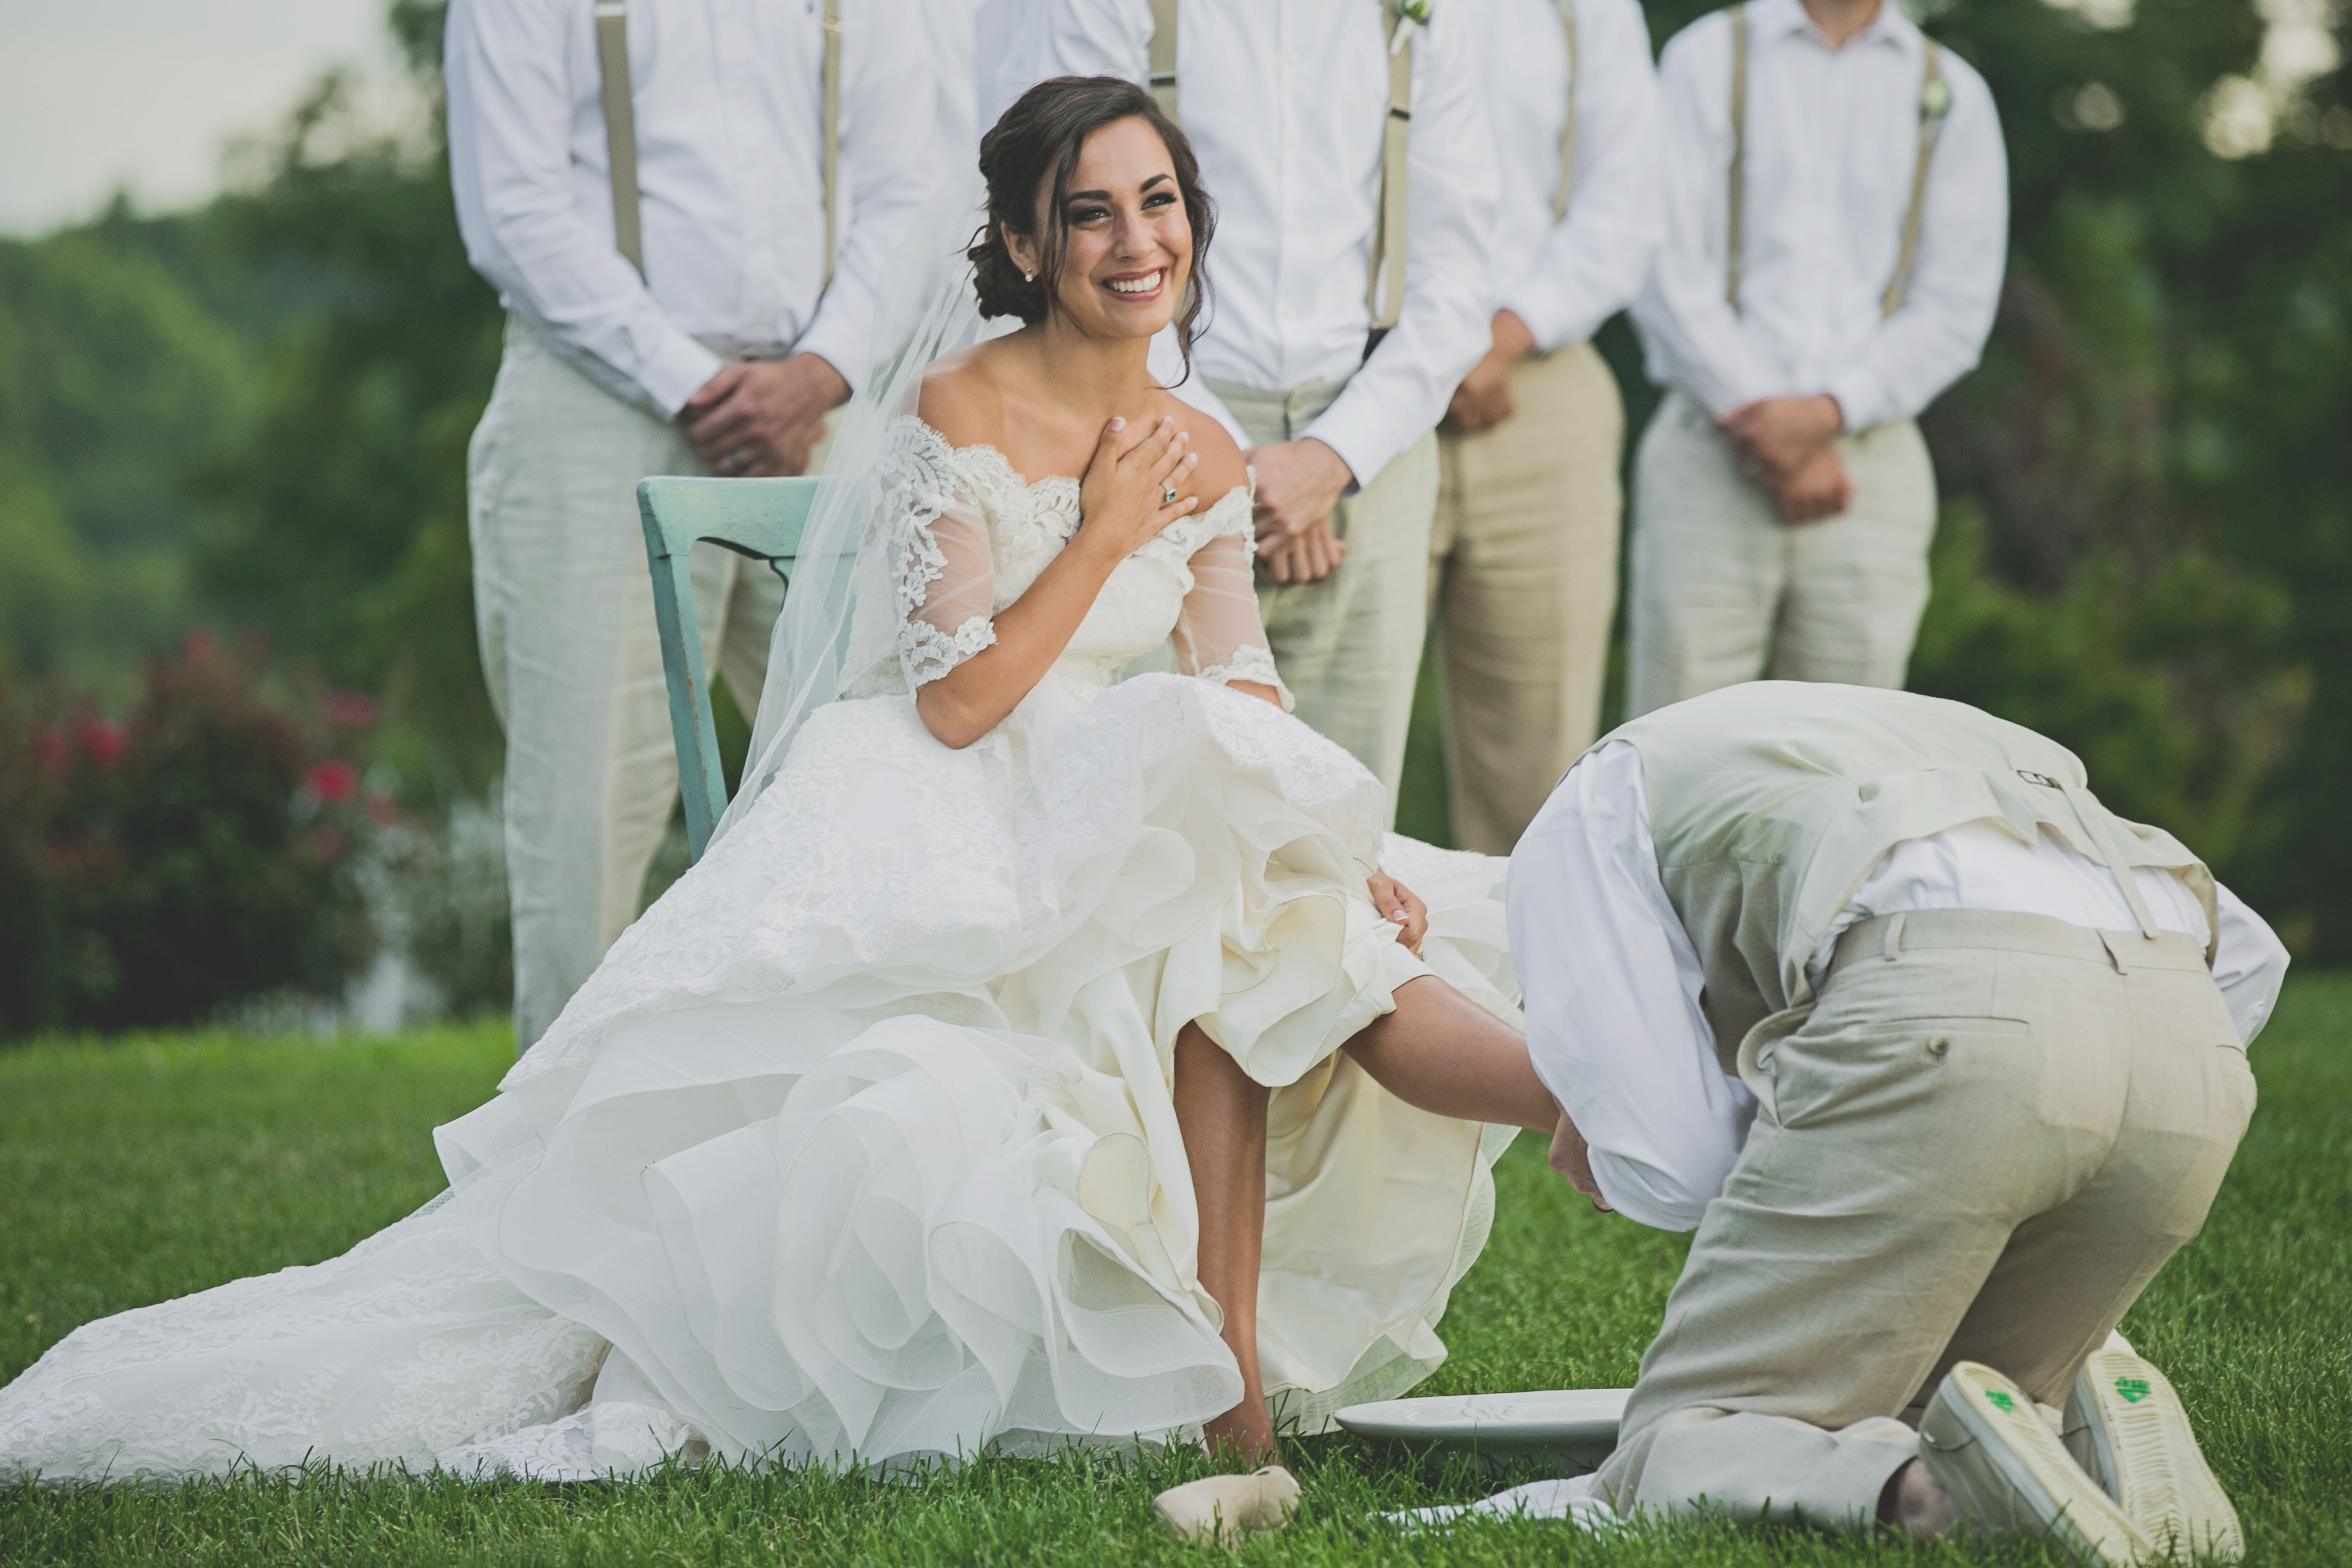 Groom Washing His Brides Feet During The Ceremony Best Moment Of My Life Wedding Shots Future Wedding Dream Wedding